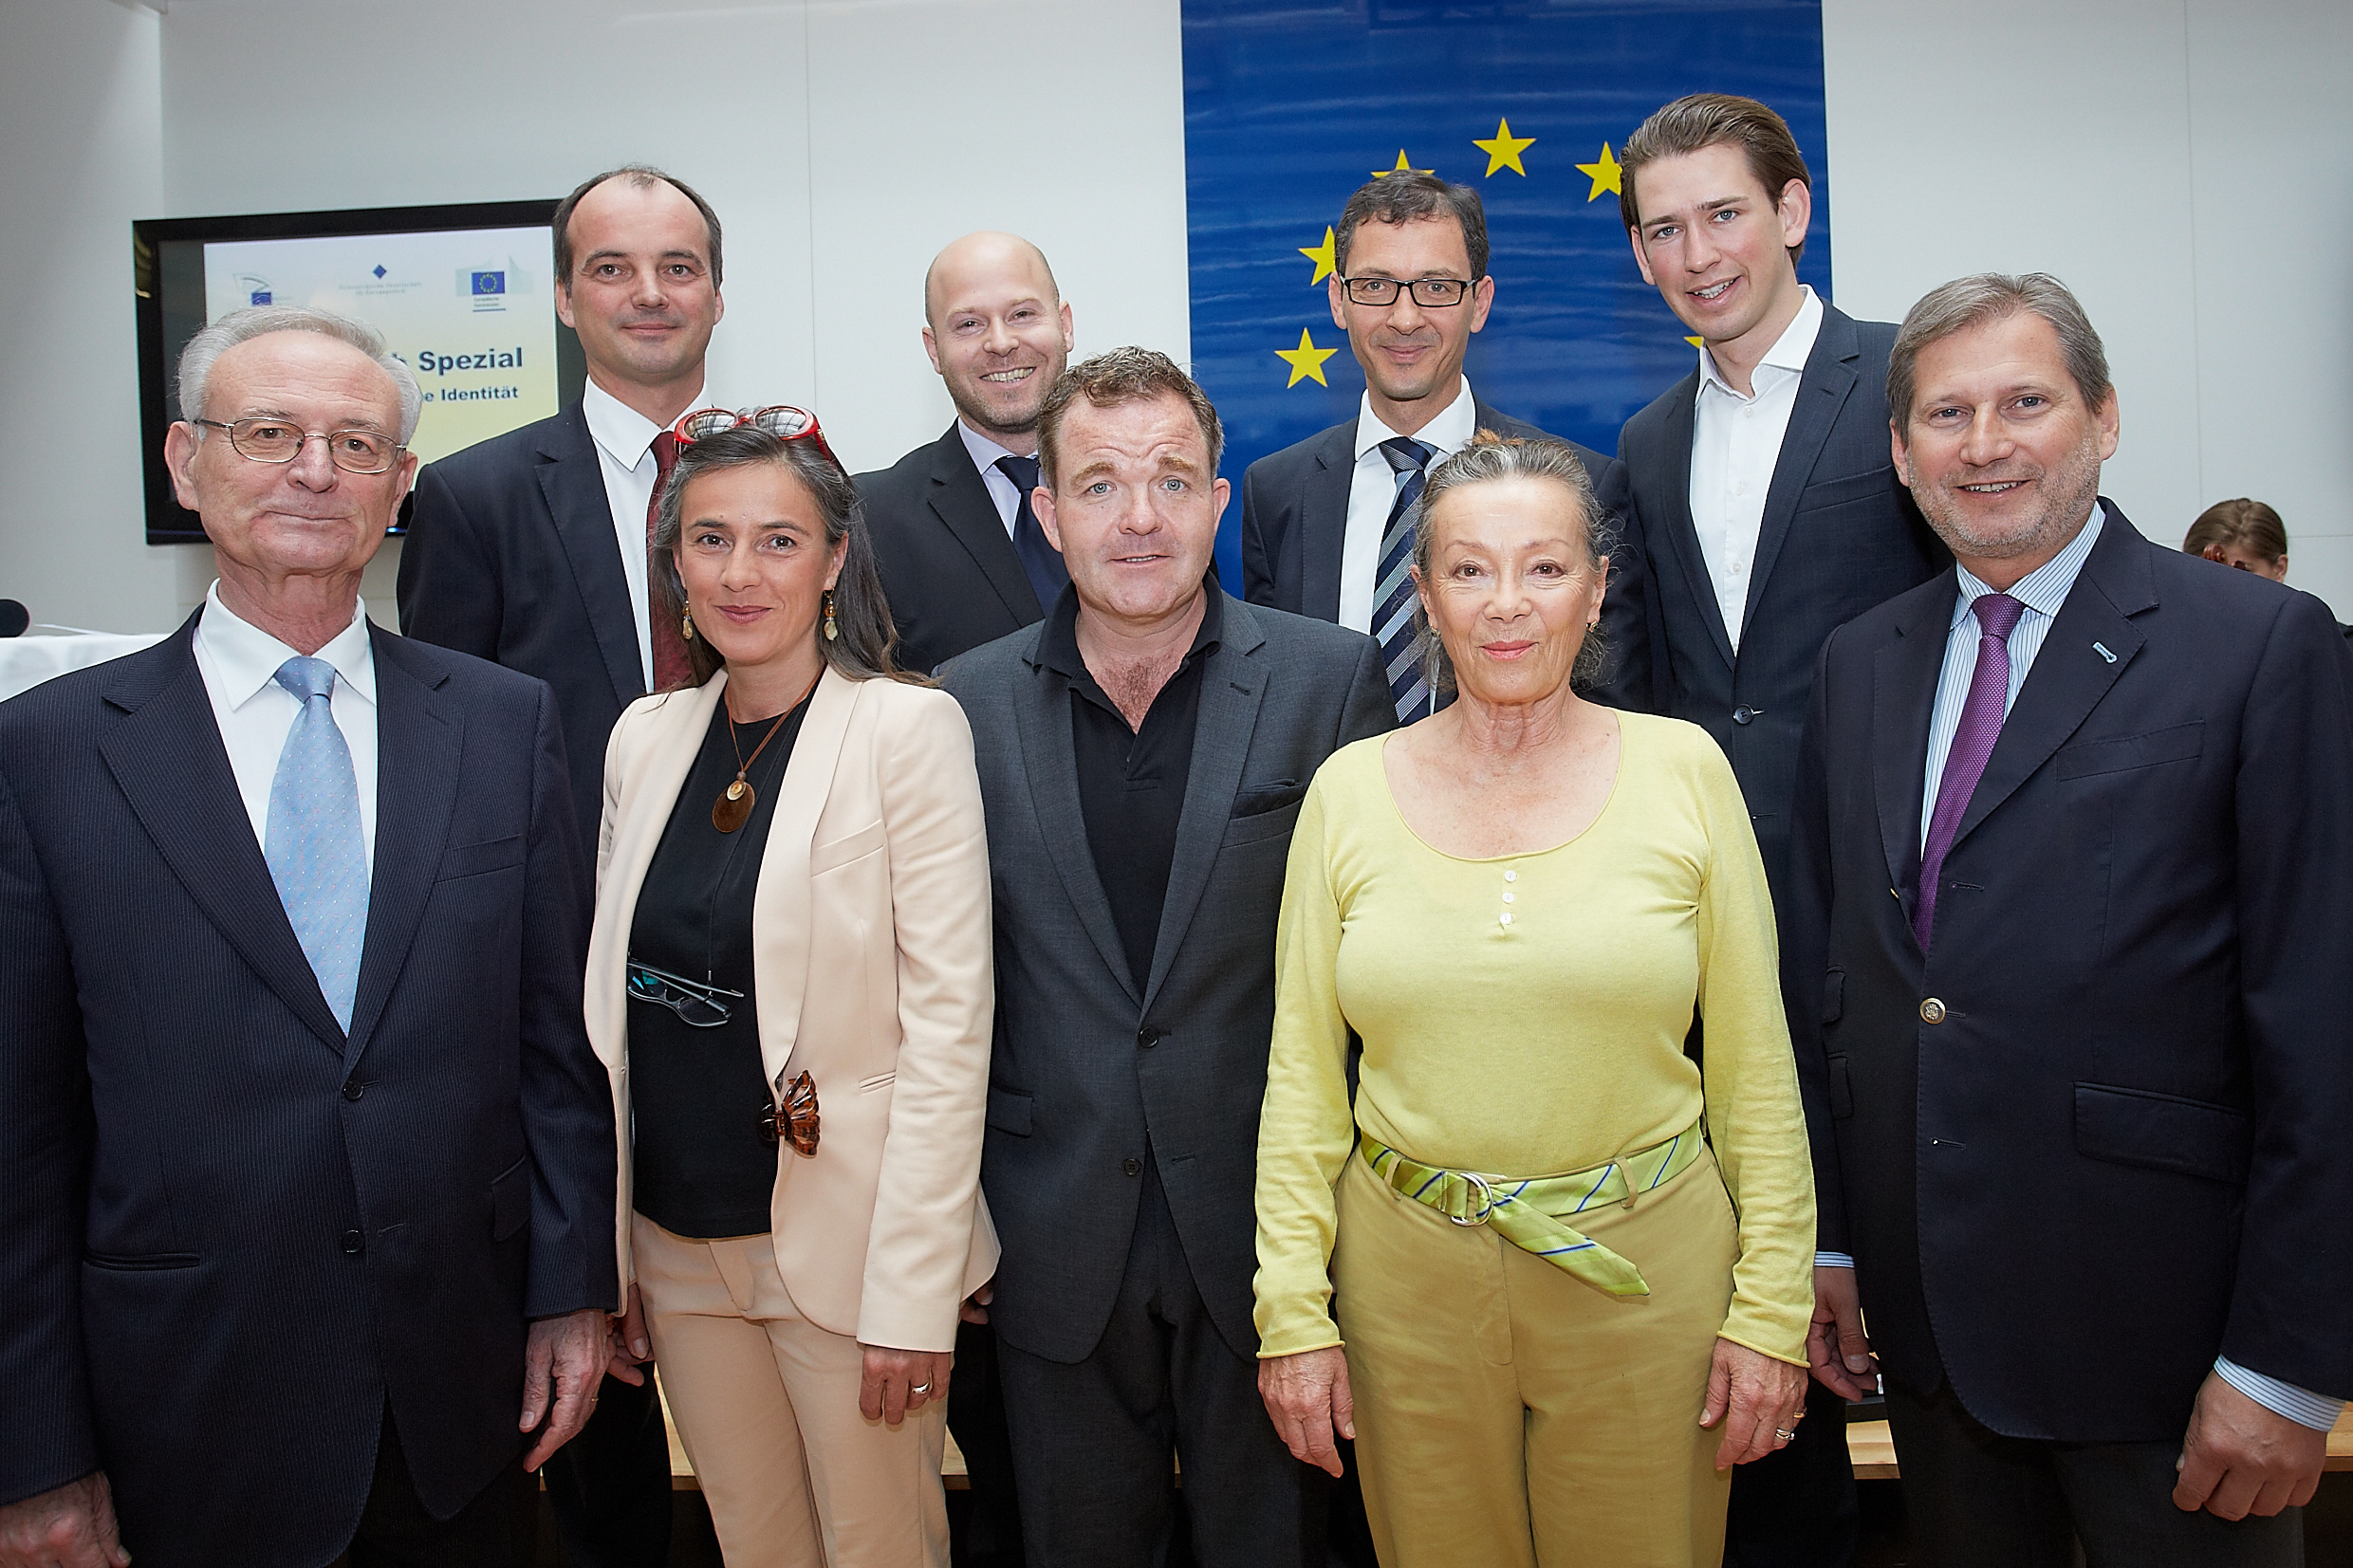 Europe Day with Commissioner Hahn: reaching out to citizens